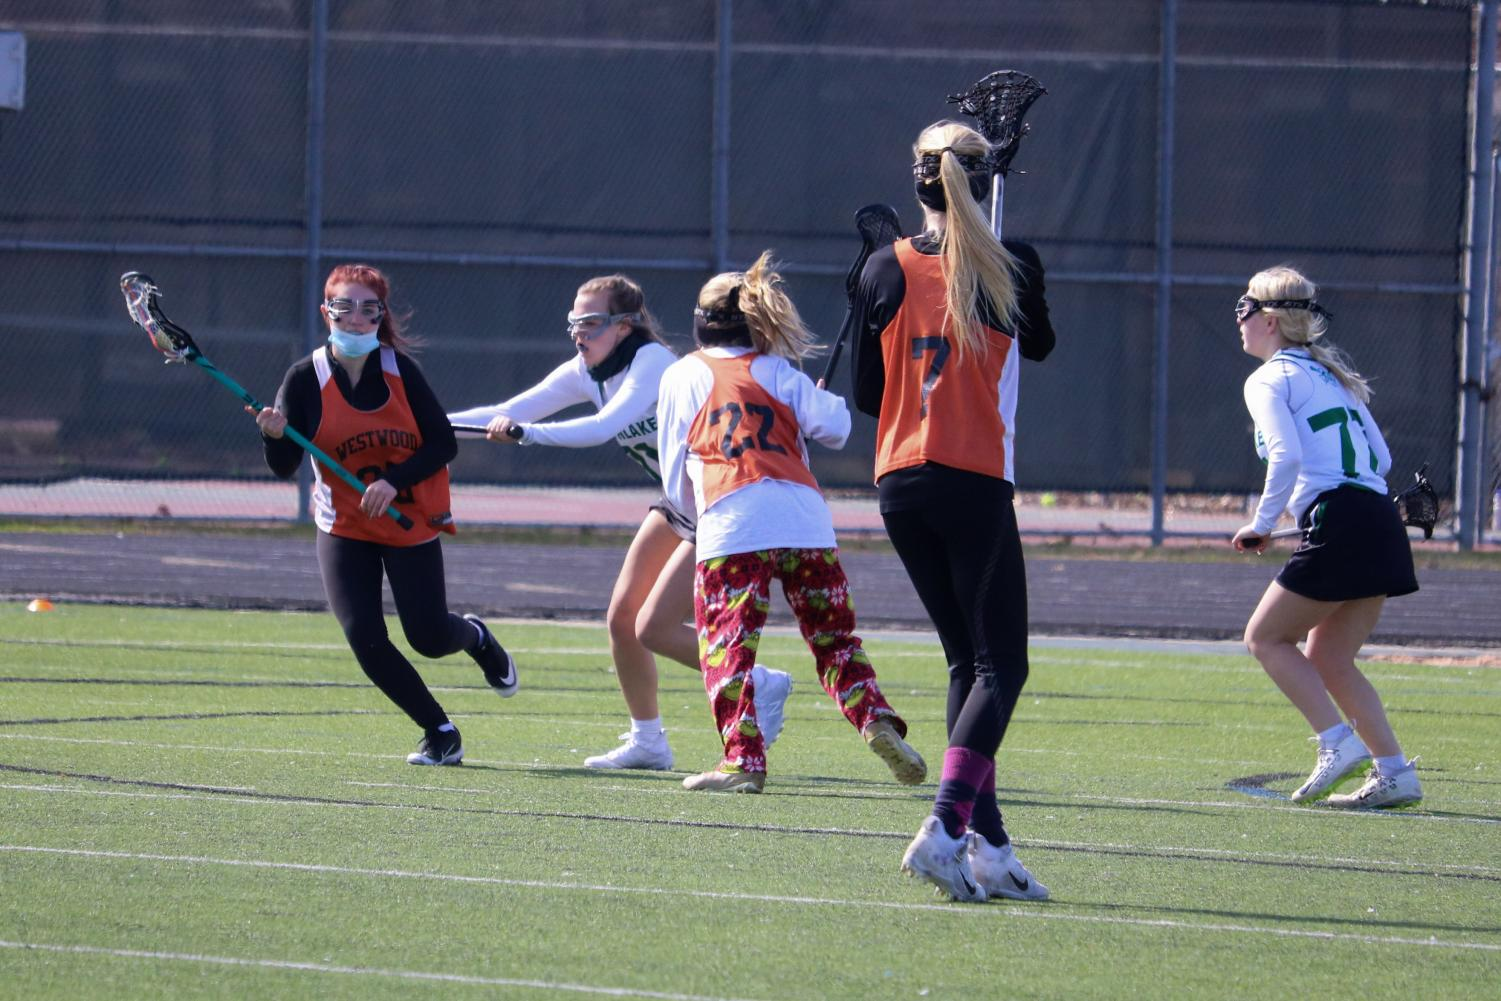 GALLERY%3A+Varsity+Womens%27+Lacrosse+Competes+in+Tournament+vs.+Southlake+and+Prosper